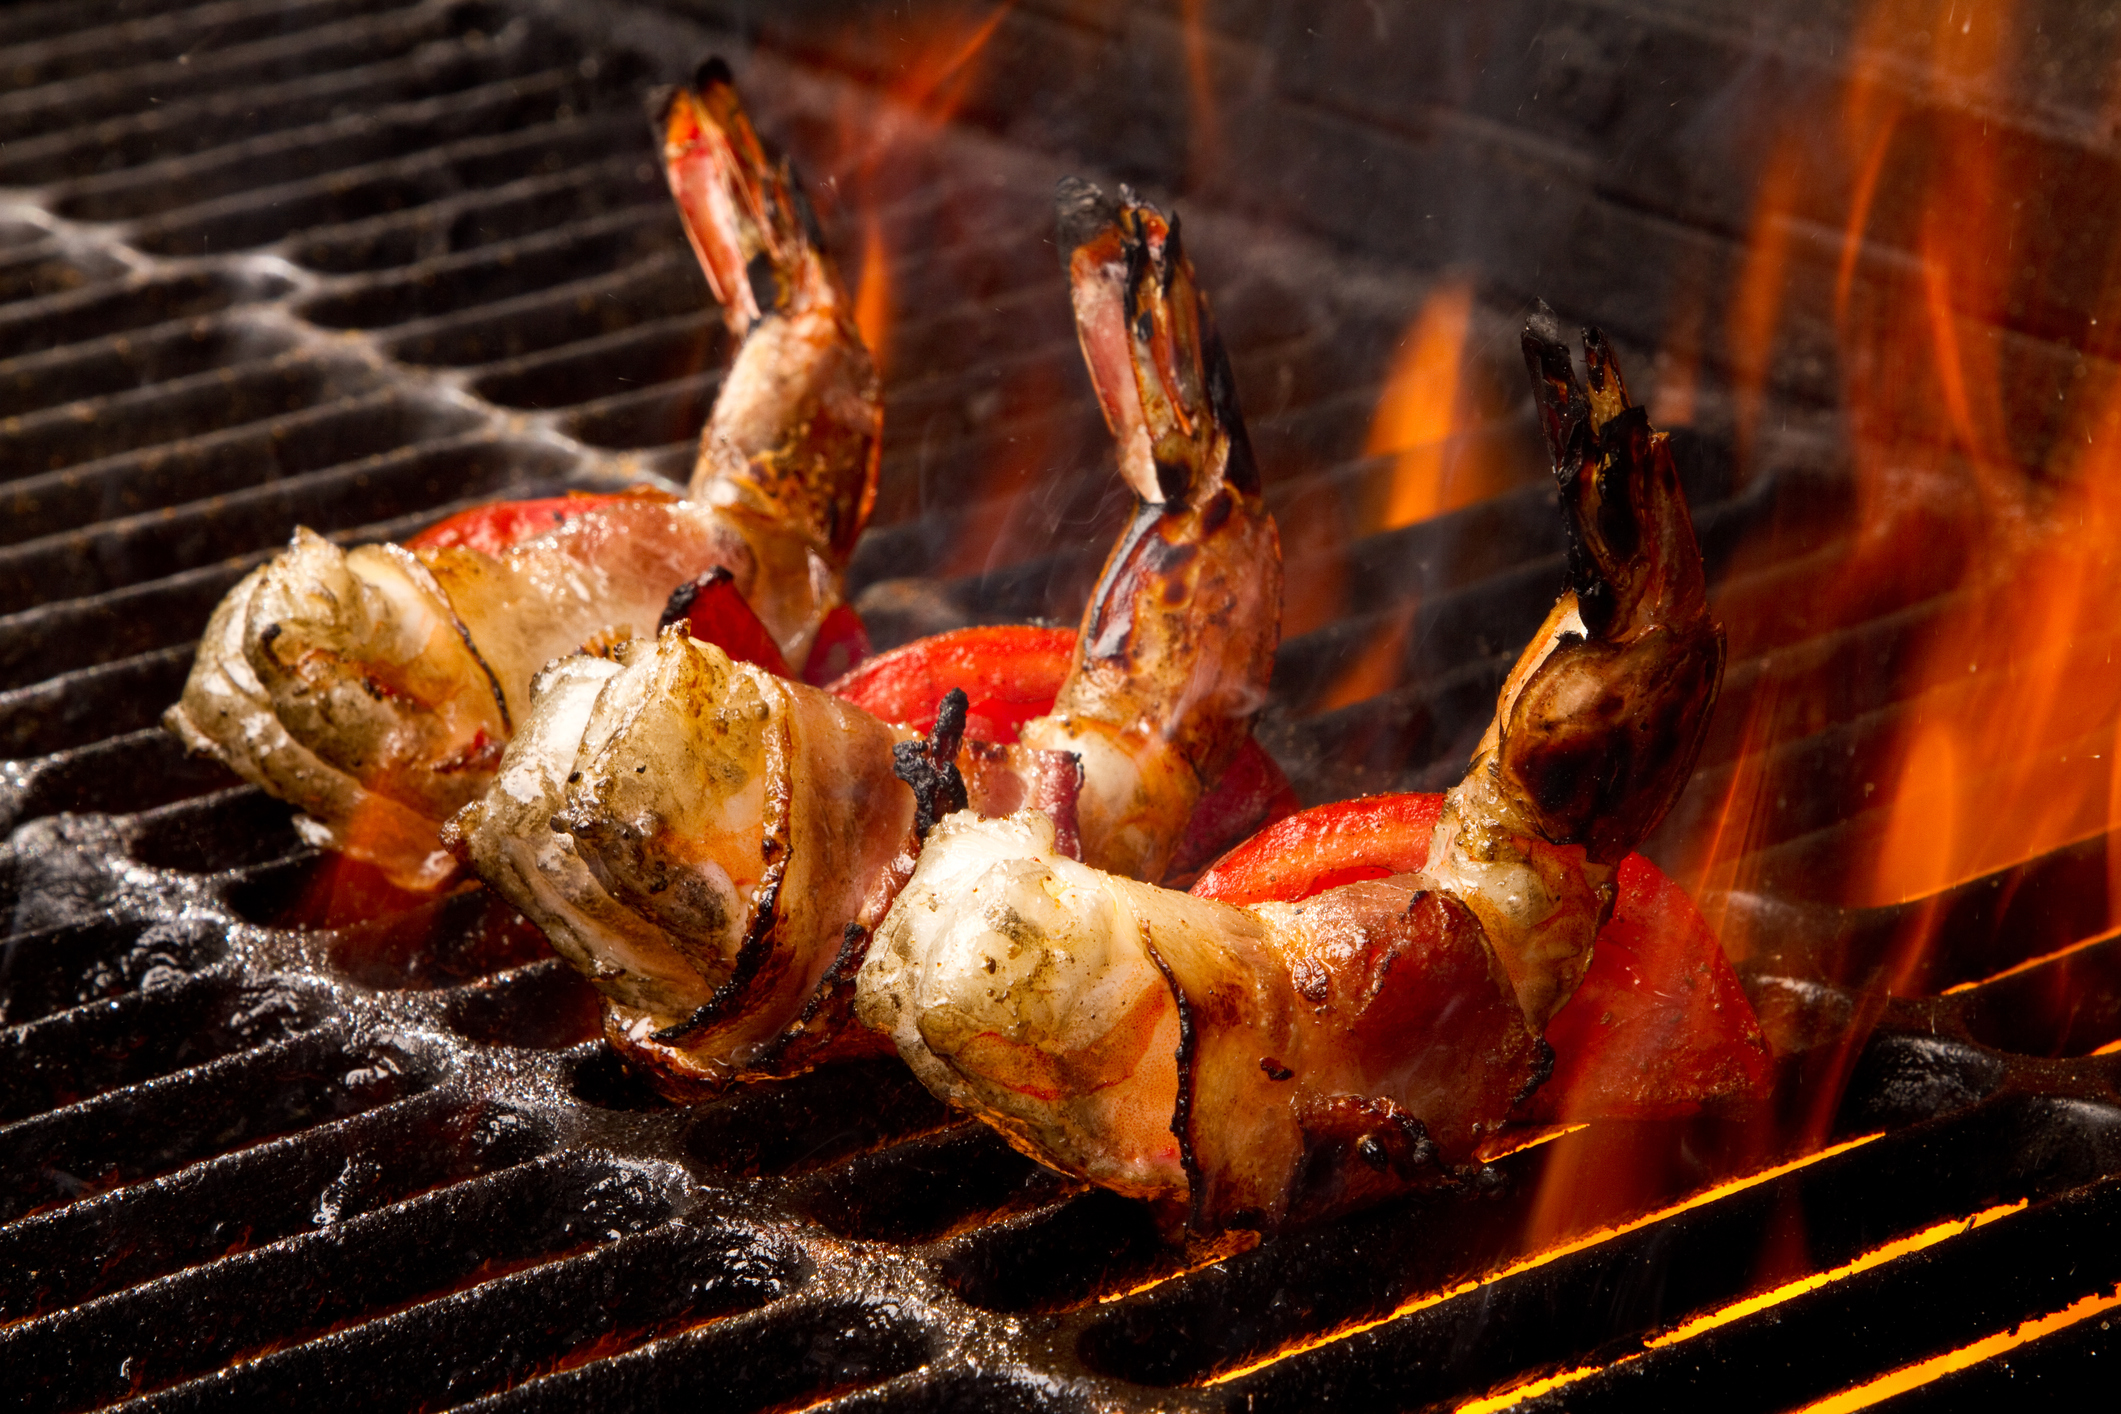 Row of three succulent jumbo shrimp or prawns wrapped in bacon on an old fashioned charcoal grill with flames leaping up to sear them. Cooking is bringing out a golden brown and red color on the shrimp.